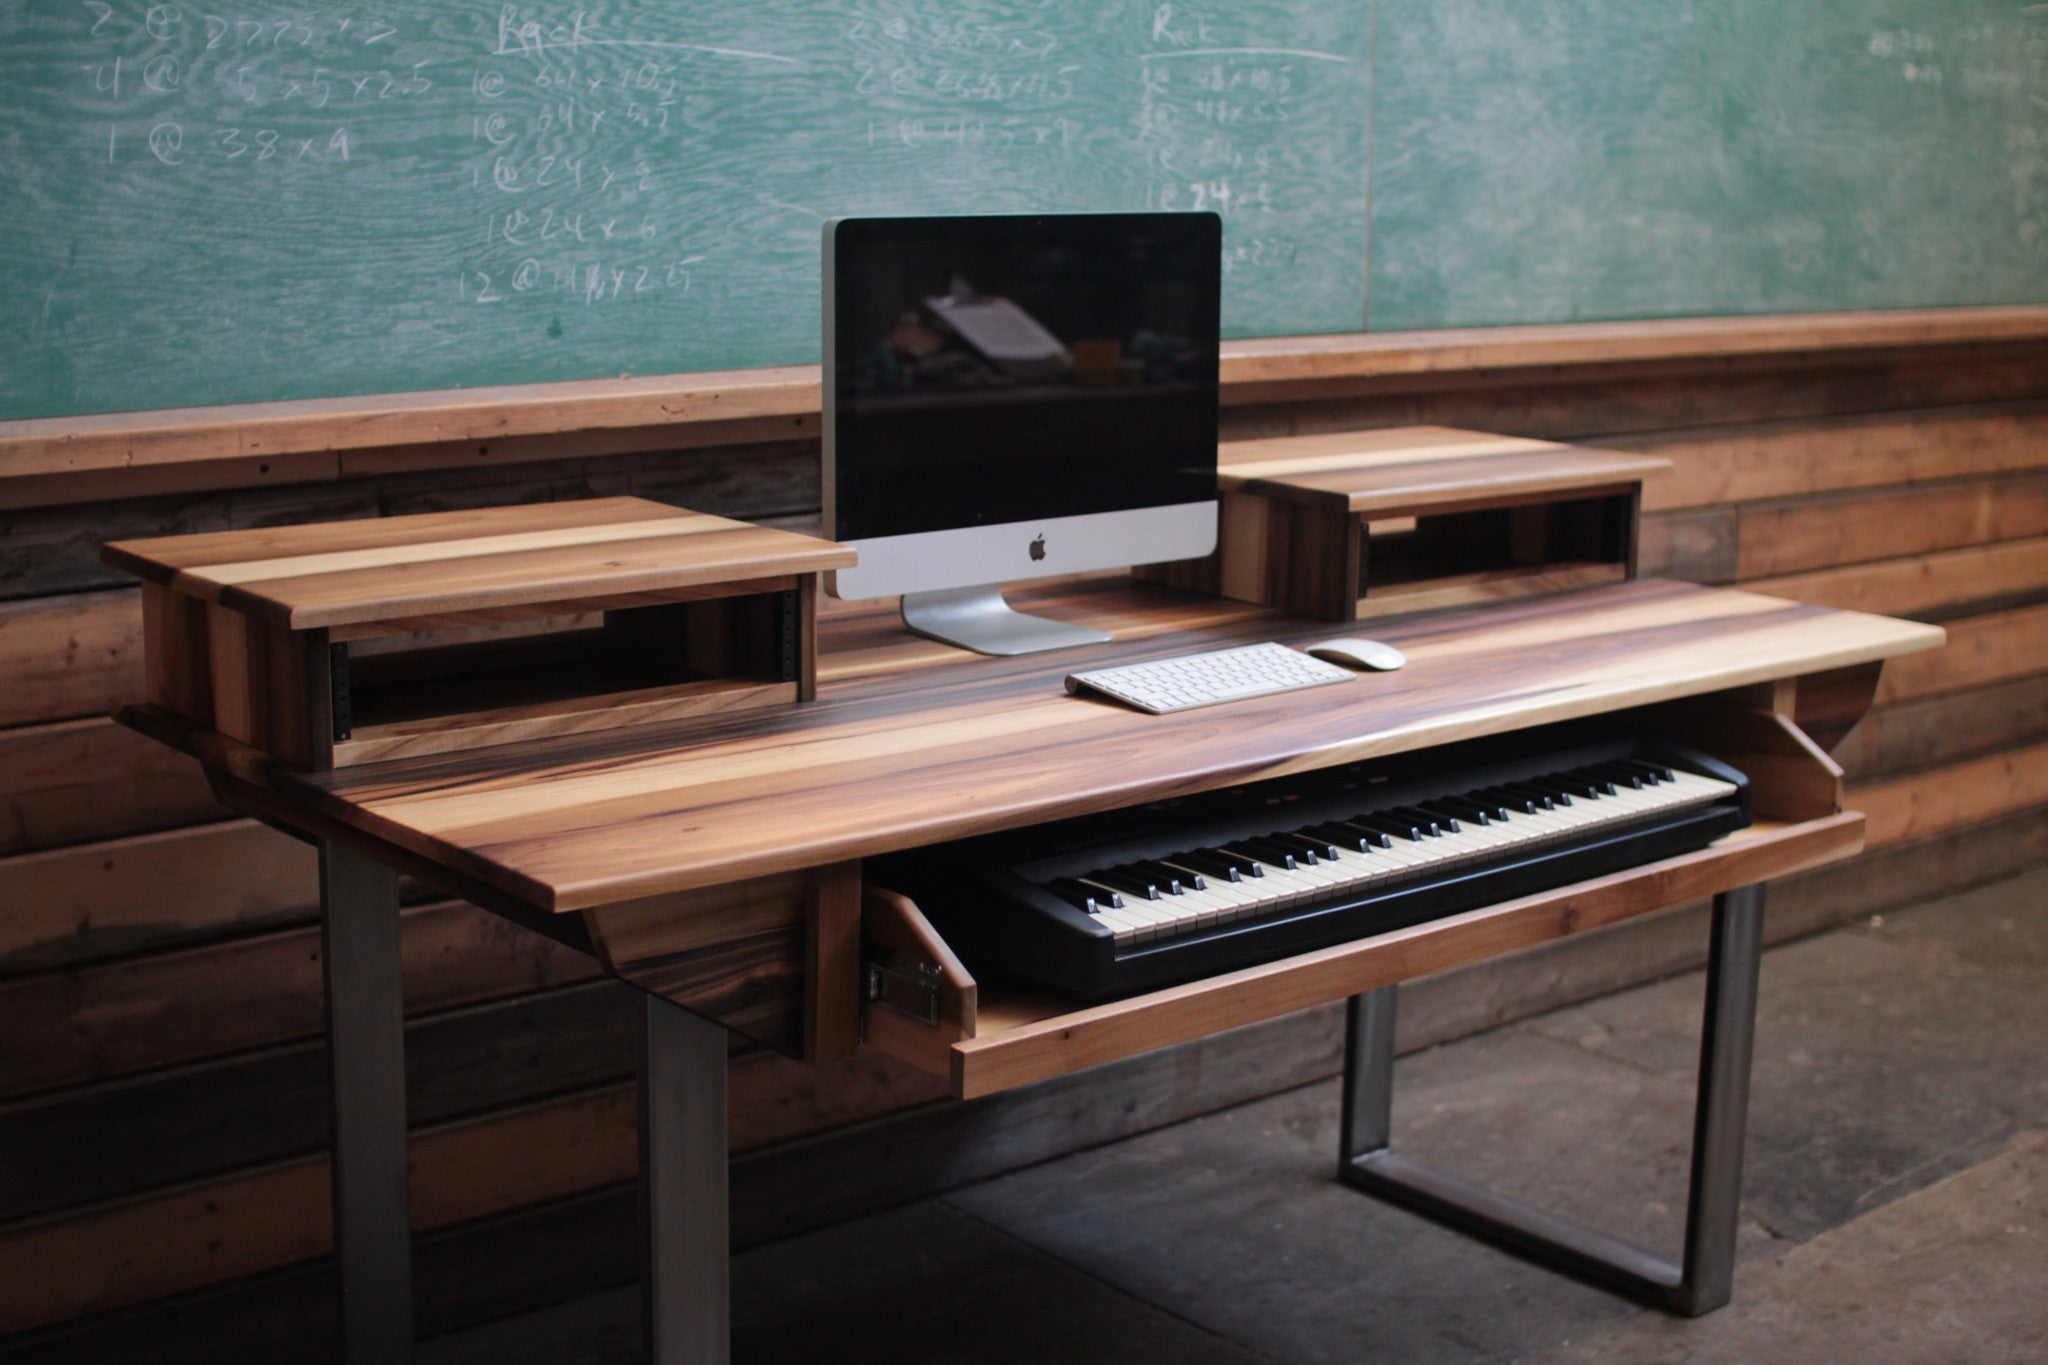 Charmant Mid Size 61 Key Studio Desk For Audio / Video / Music / Film / Production